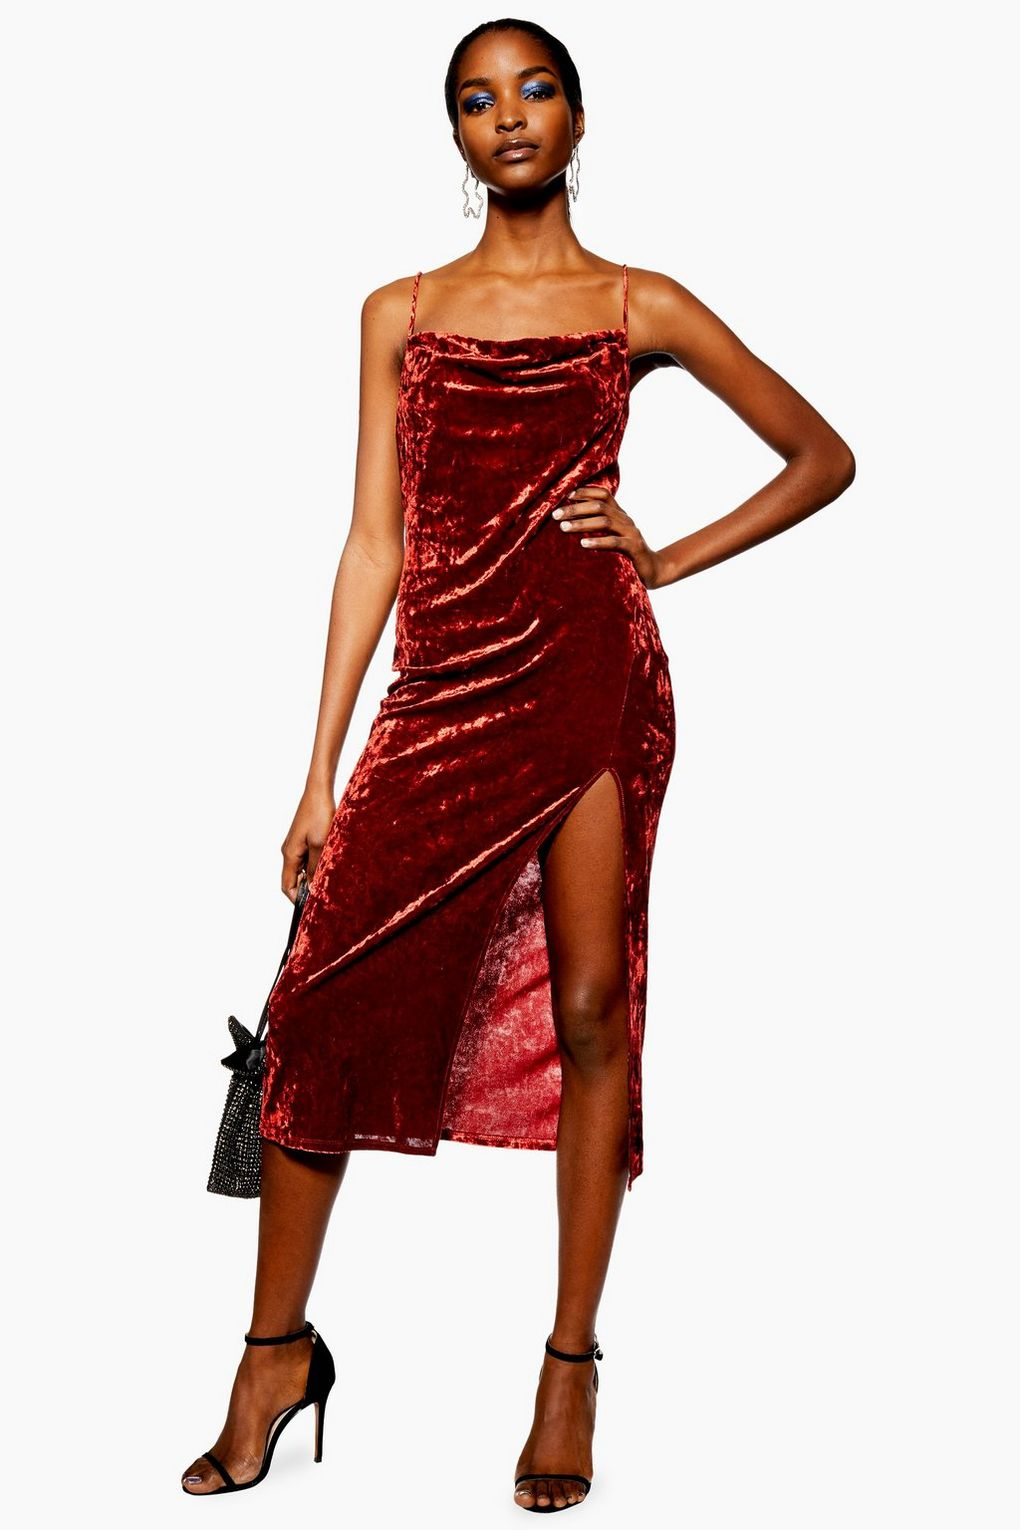 269ba7b2e5 New Year s eve party dresses - Find Your Dream Dress